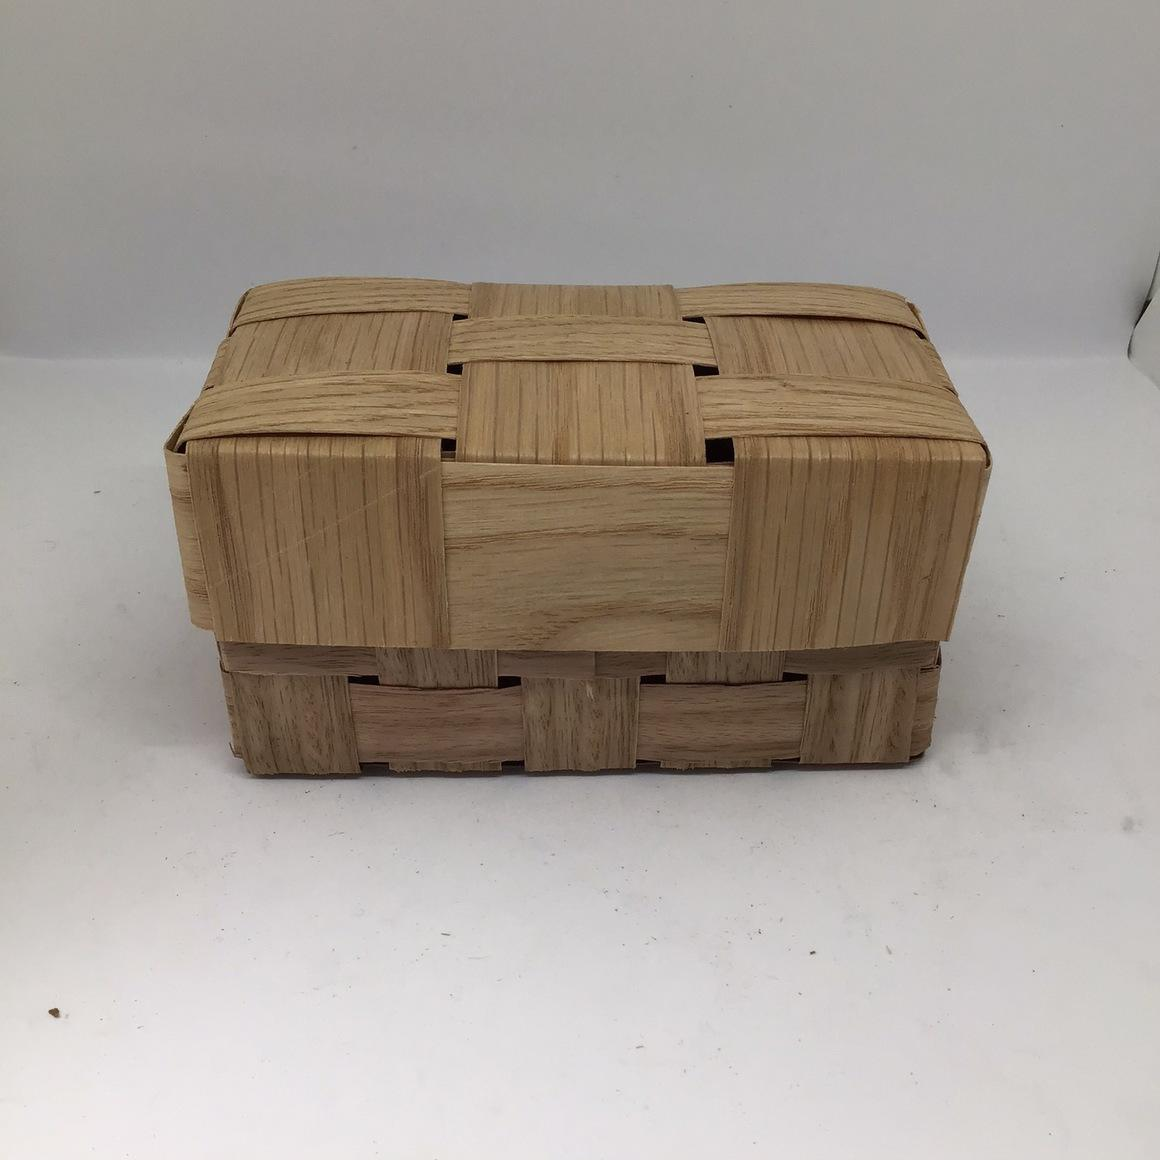 Wooden Box with lid (8x15x7cm) Woven form reclaimed timber veneer. Gift Box, Hamper | Trada Marketplace